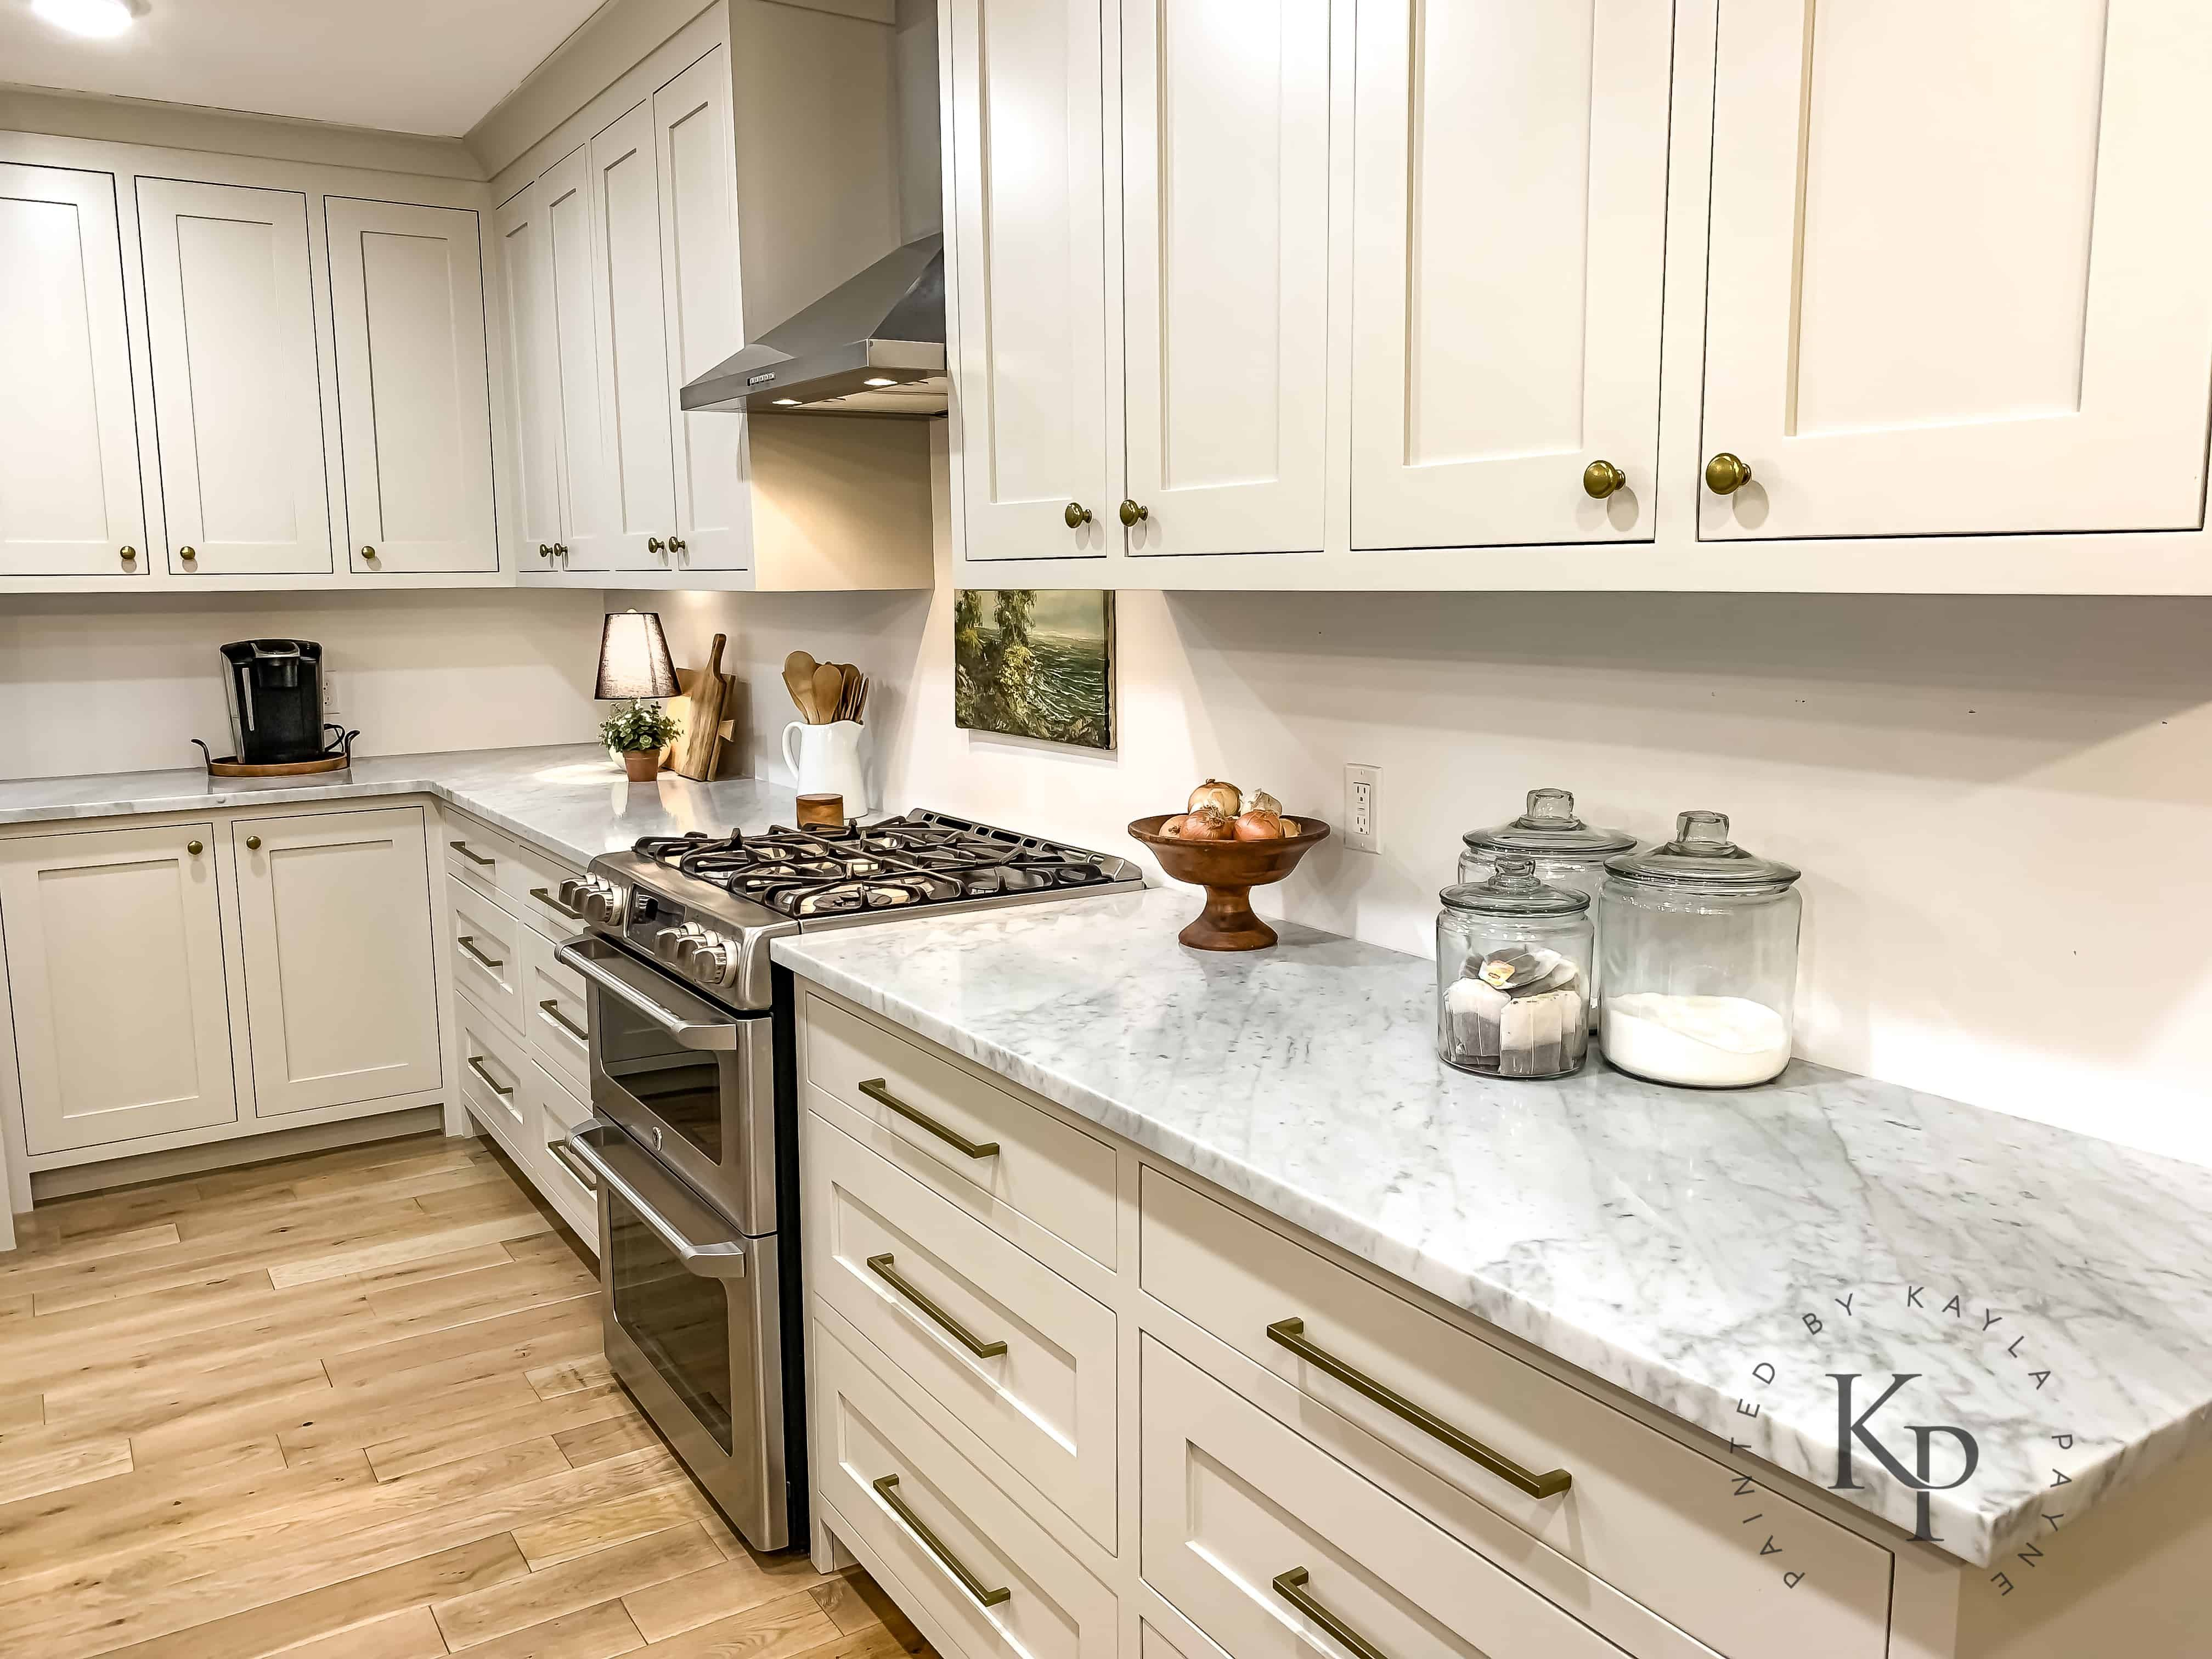 Revere Pewter Kitchen Cabinets Painted By Kayla Payne In 2020 Revere Pewter Kitchen Kitchen Cabinets Painting Kitchen Cabinets